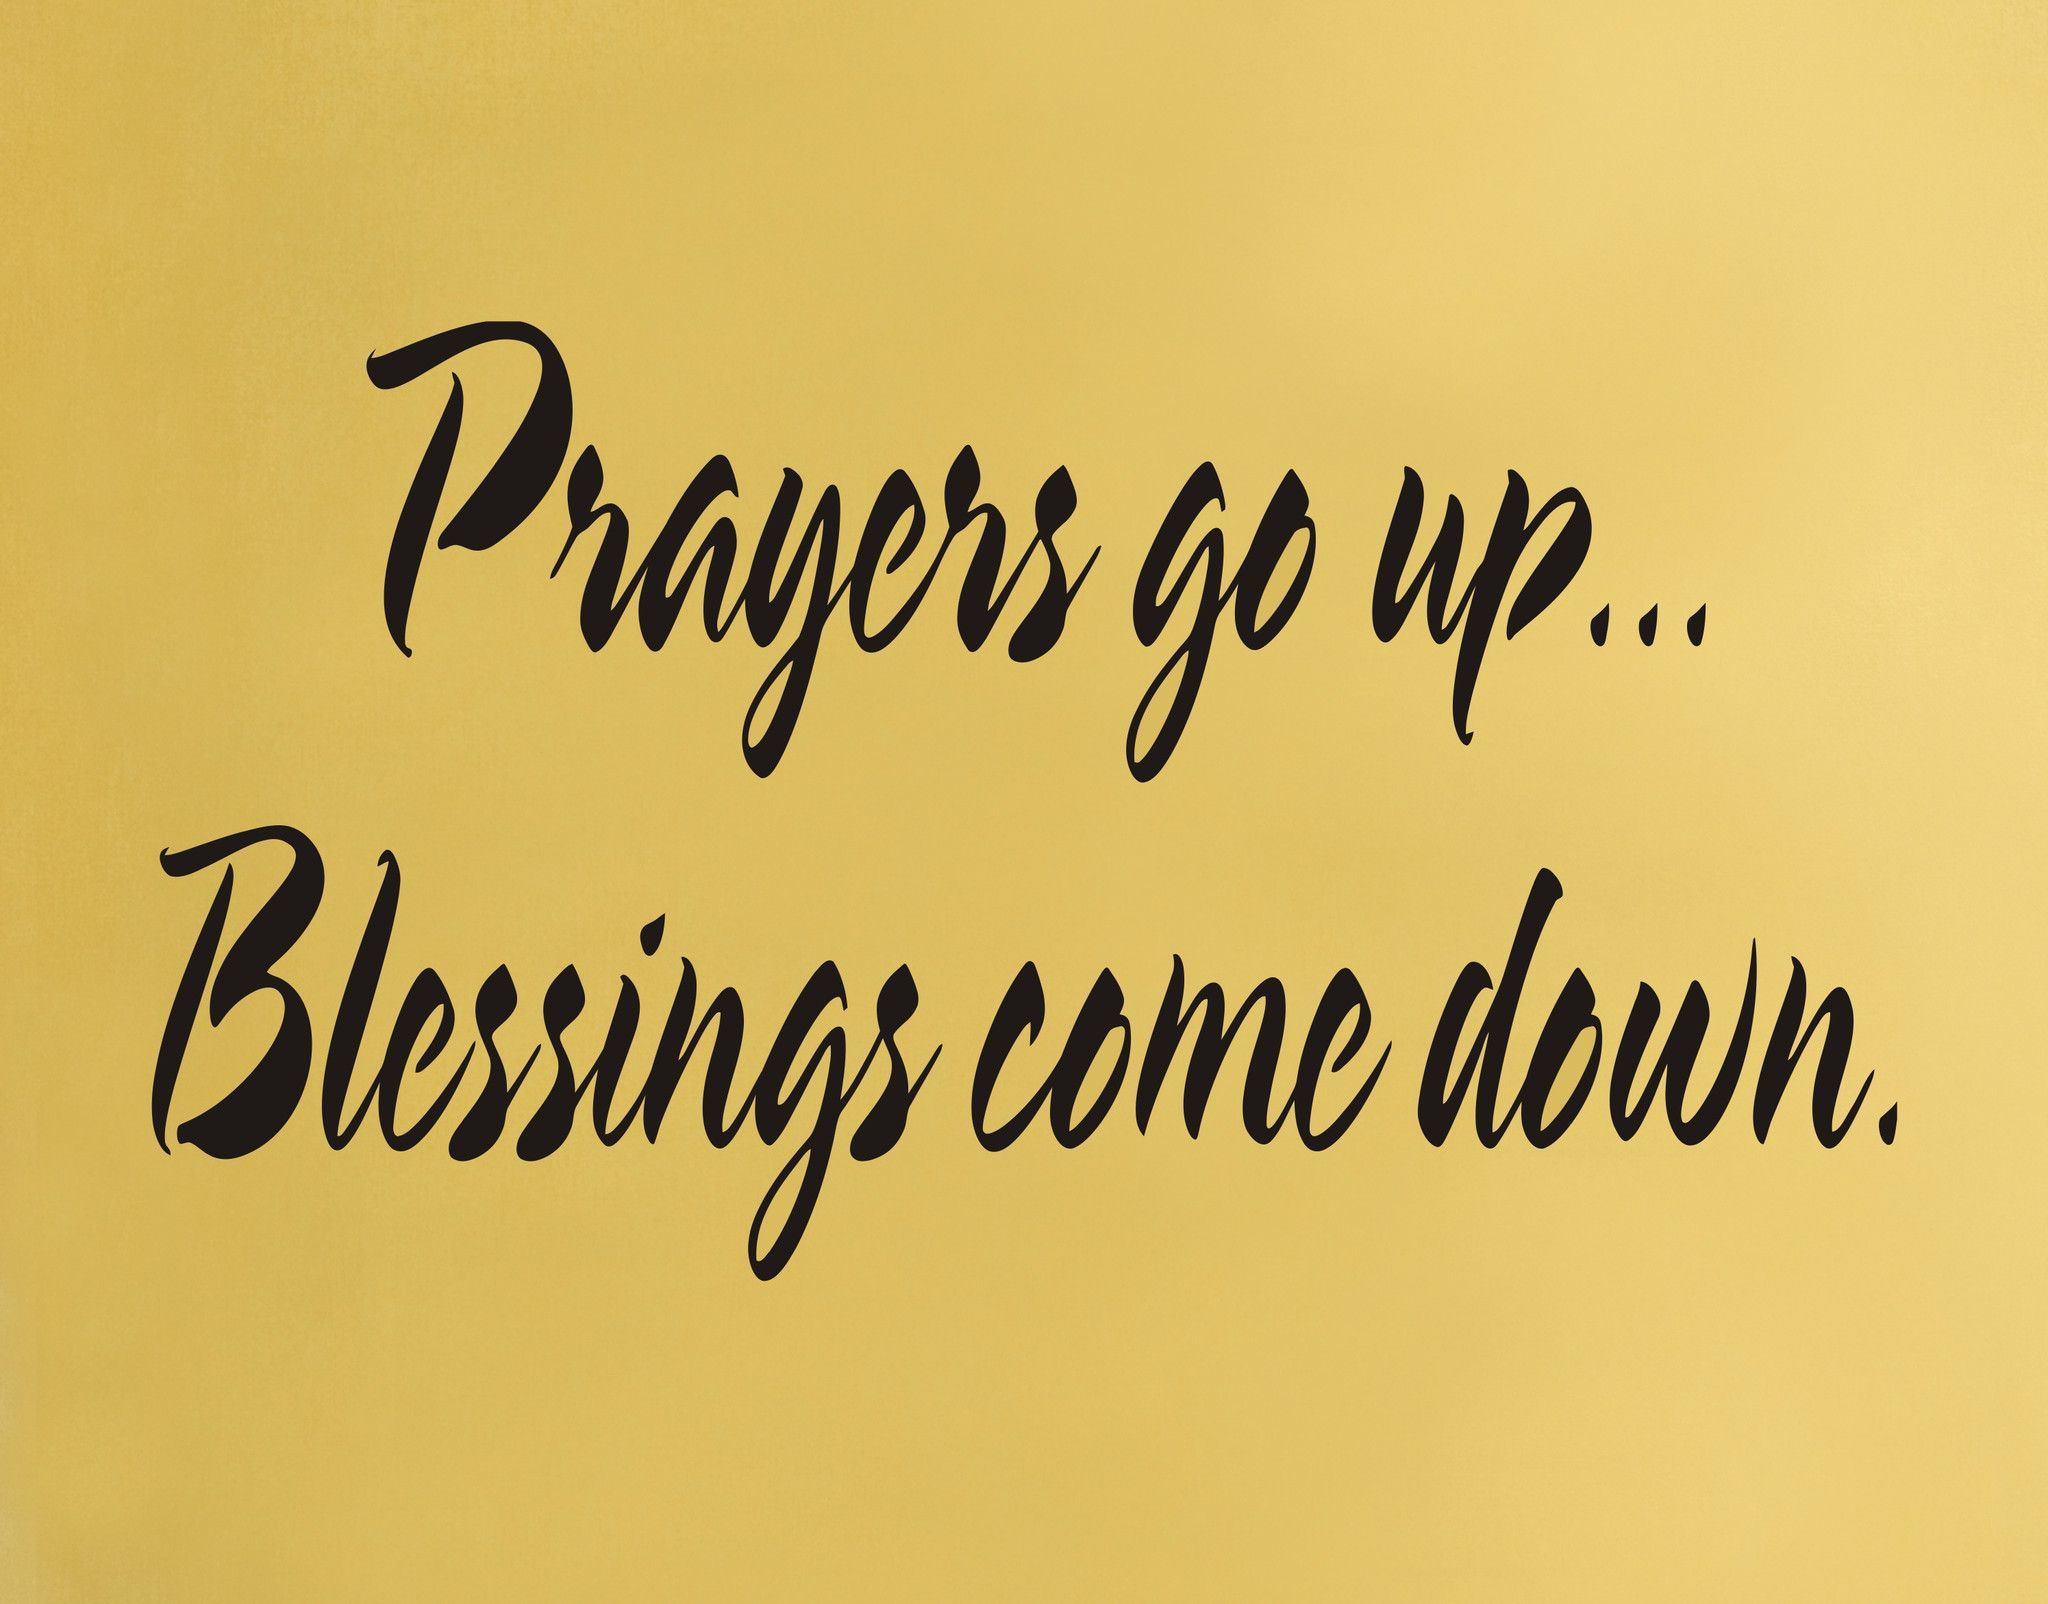 Prayers go up Blessings come down wall decal | Blessings, Bible and ...